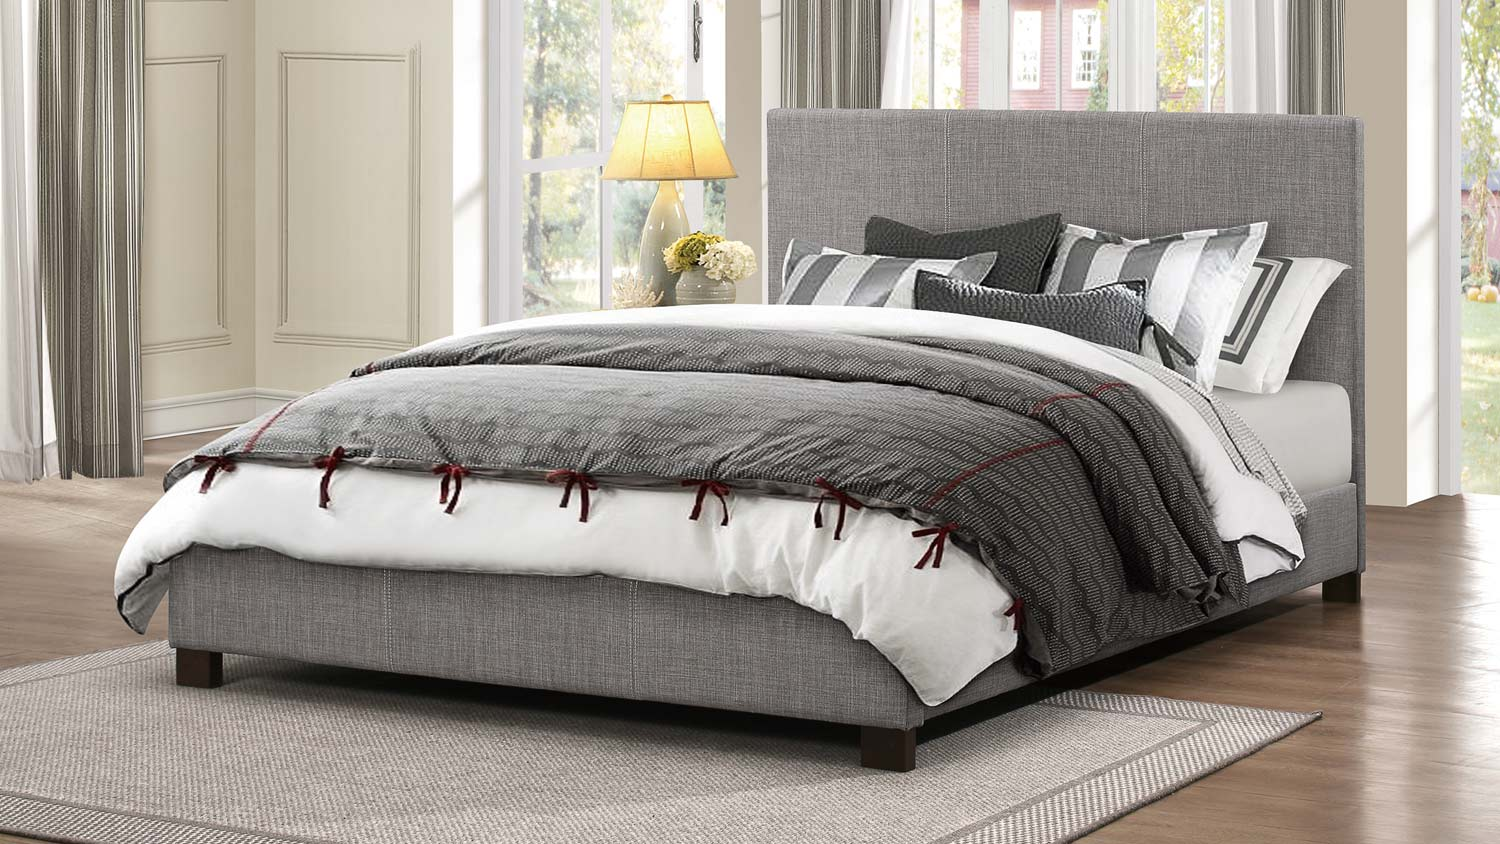 Homelegance Chasin Upholstered Platform Bed - Grey